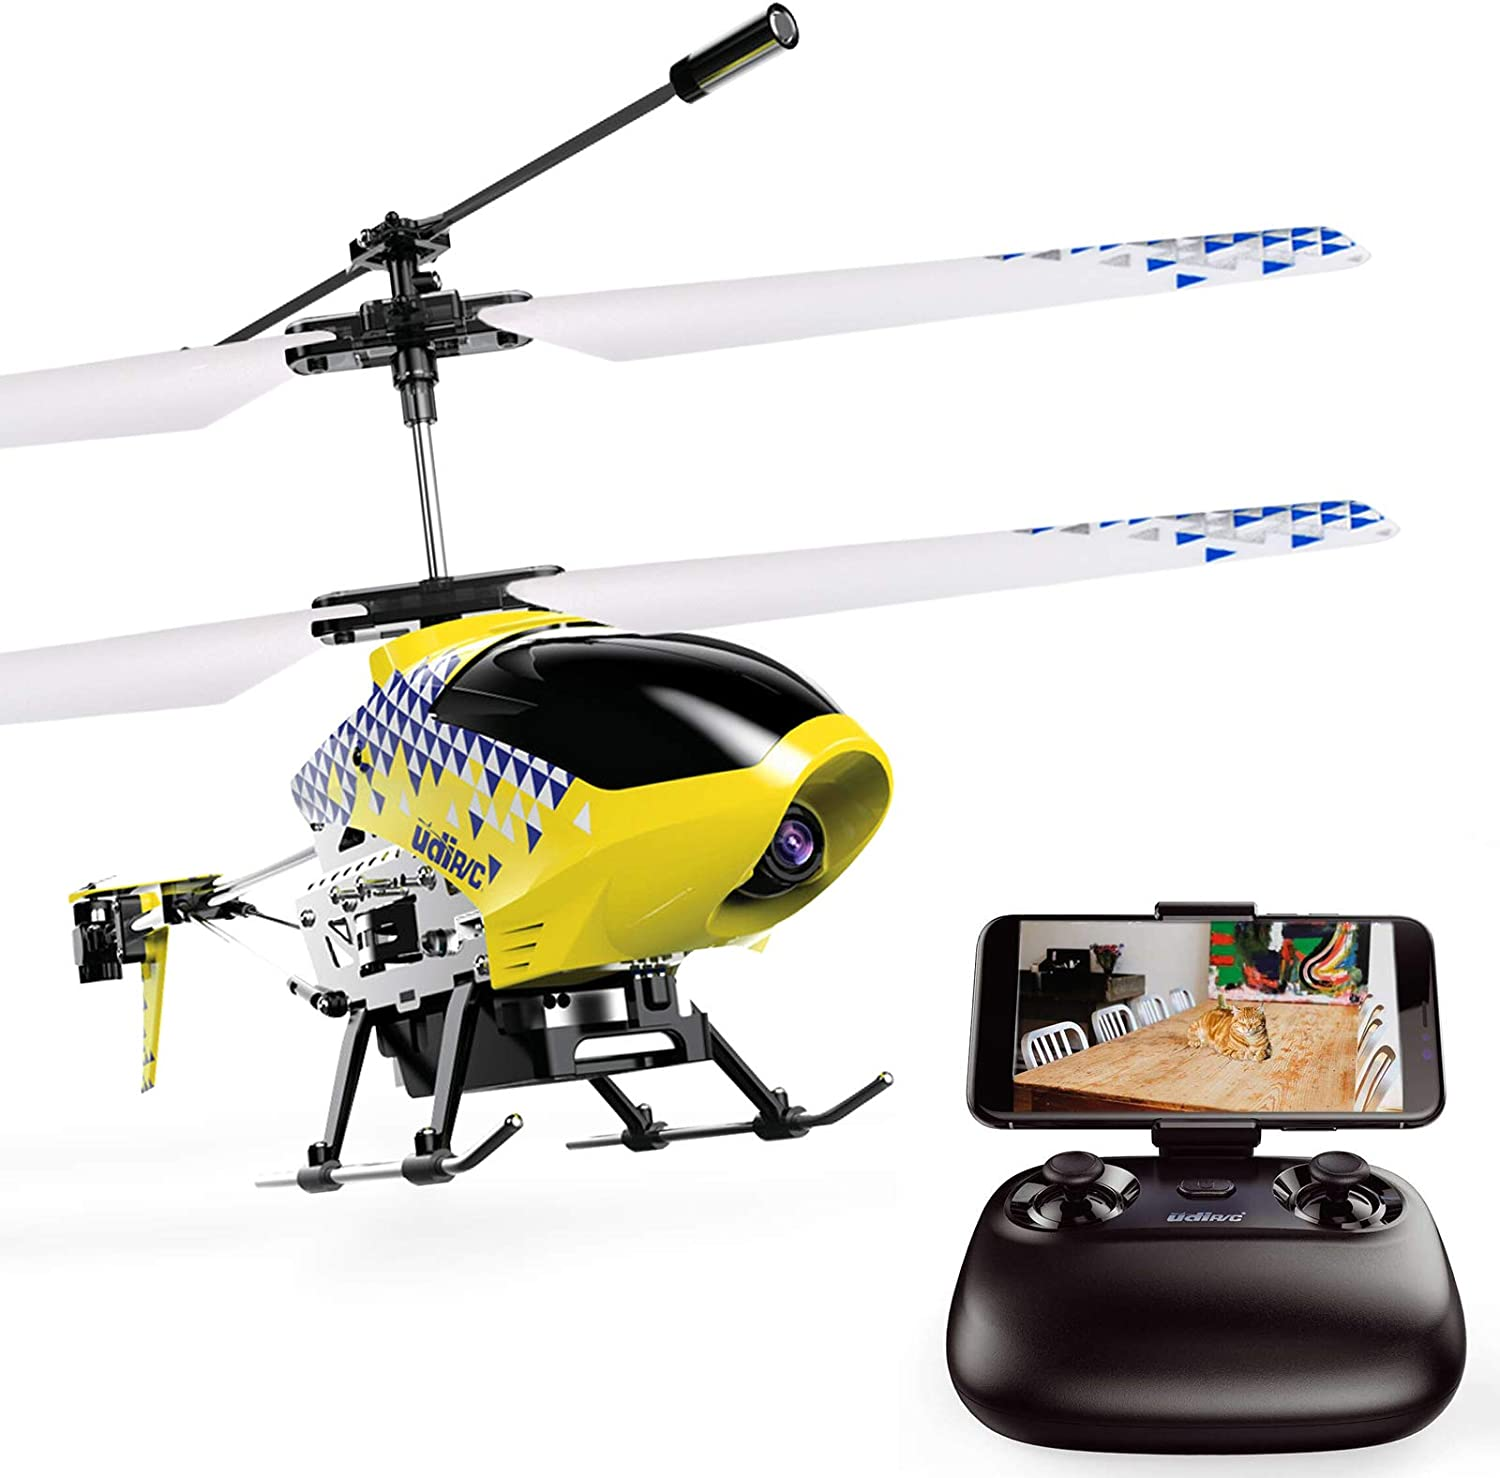 Amazon.com: Cheerwing U12S Mini RC Helicopter with Camera Remote Control Helicopter for Kids and Adults: Toys & Games